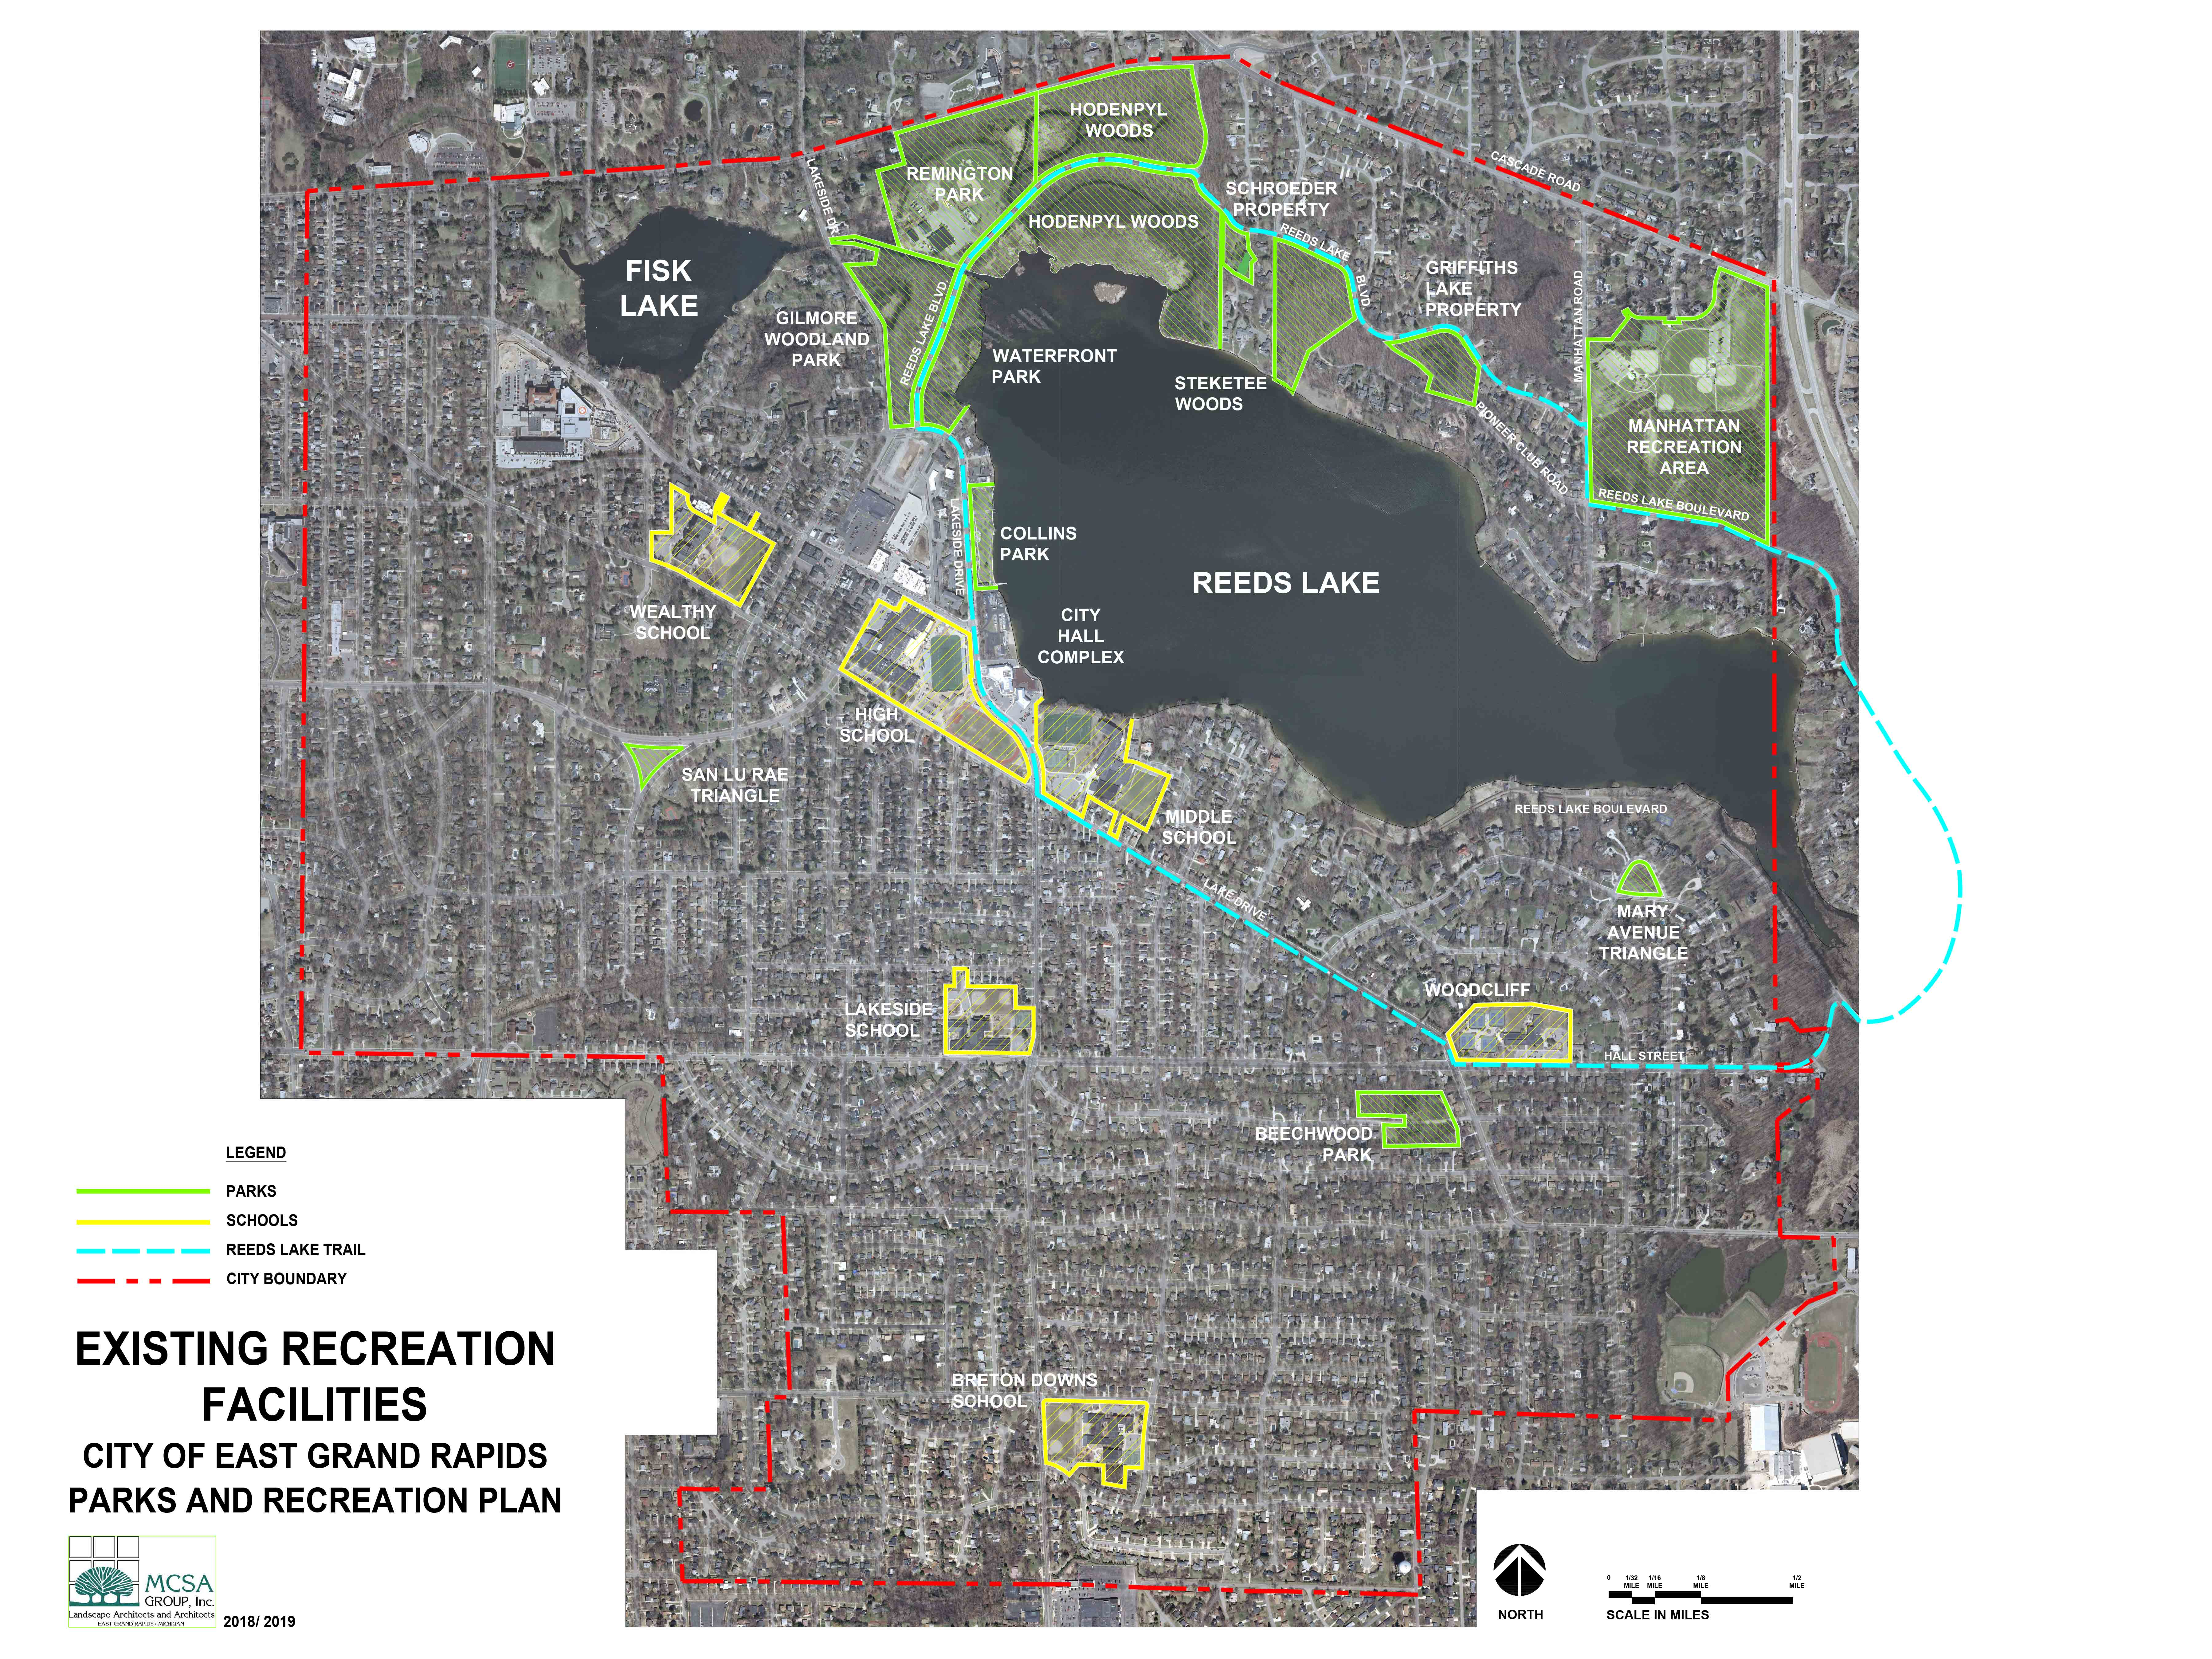 The following questions relate to the Parks in East Grand Rapids